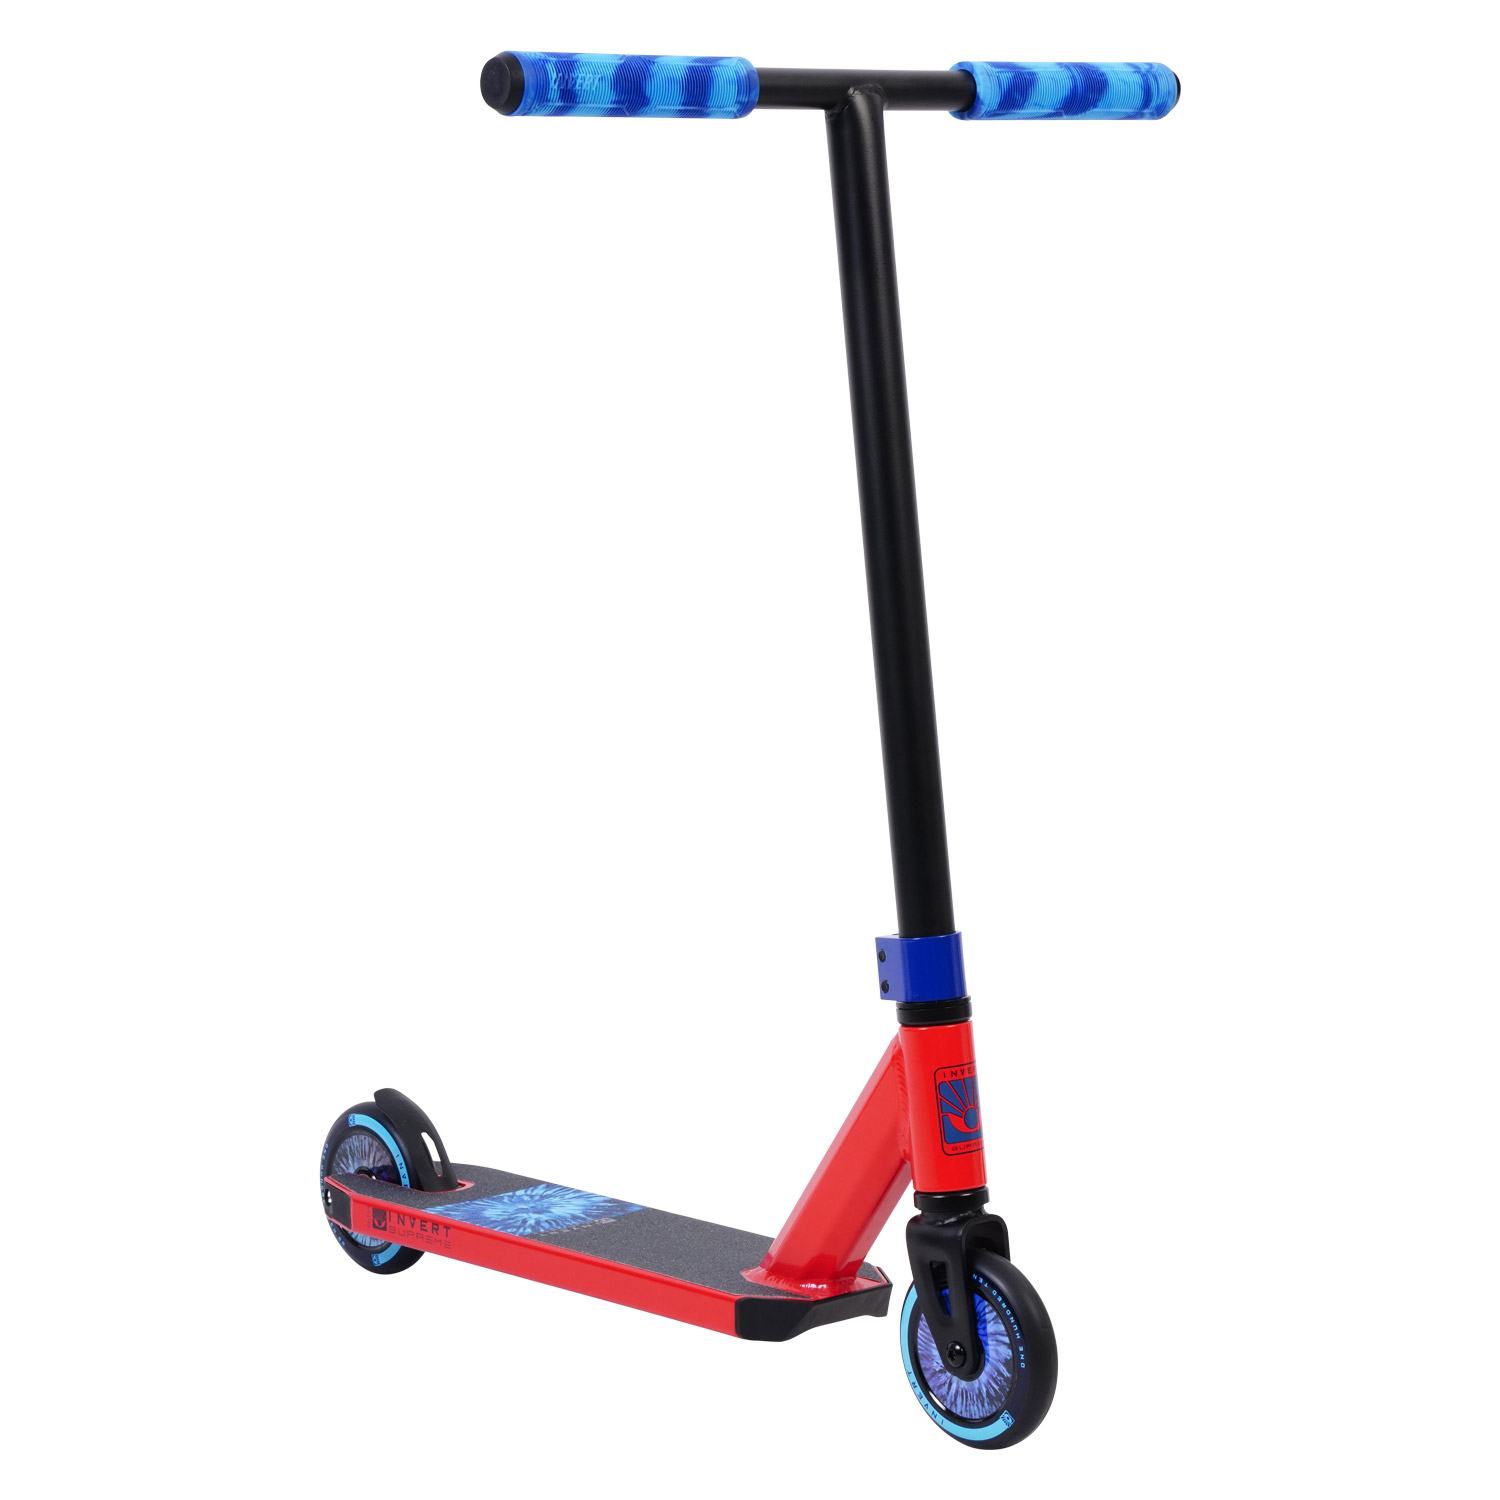 Invert Supreme Mini 1-4-8 Scooter - Red/Black/Blue